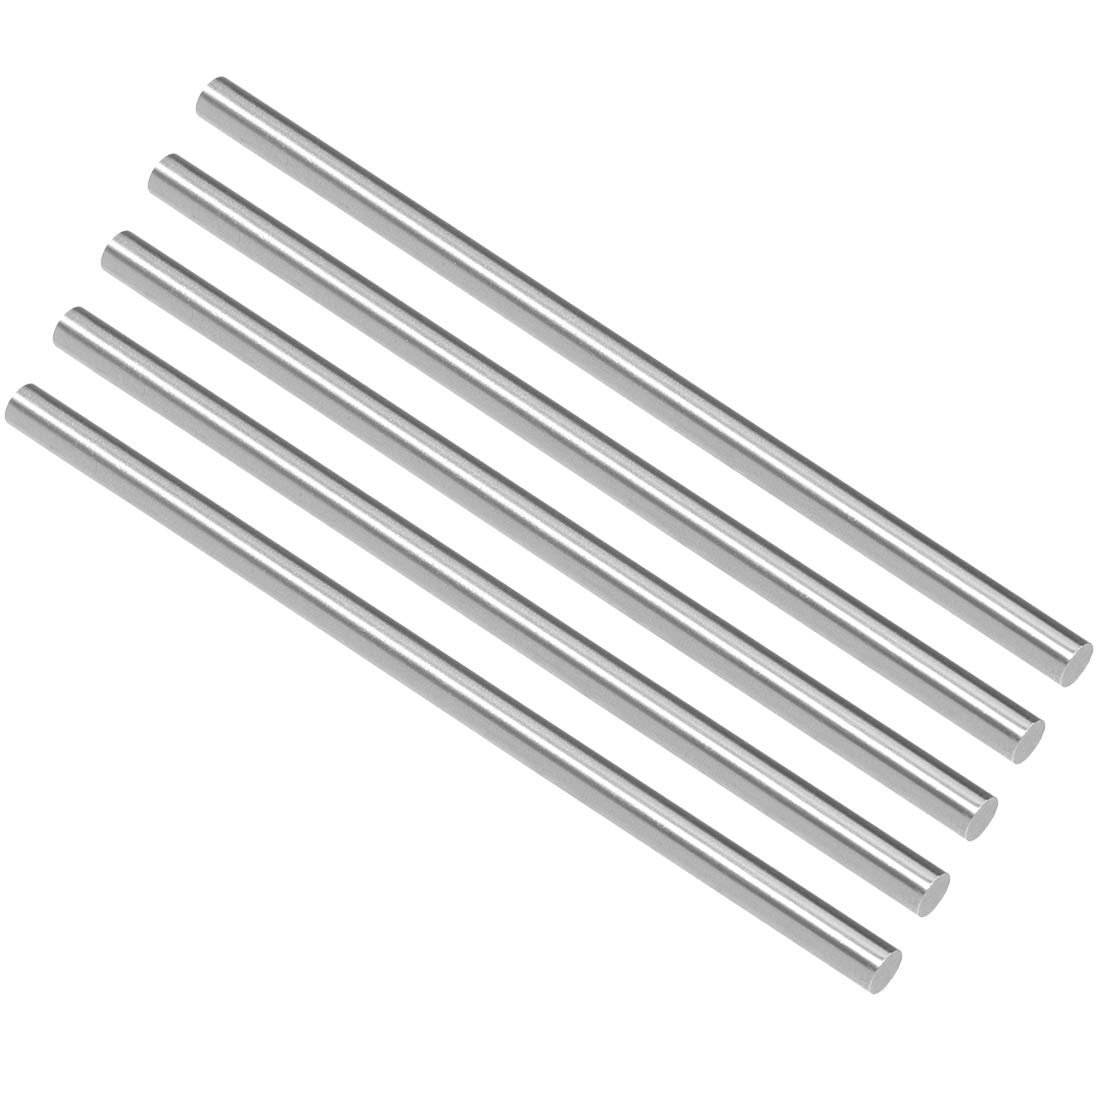 5Pcs Lathe 100mm x 2mm 304 Stainless Steel Axle Round Rod Stock Drill Bar